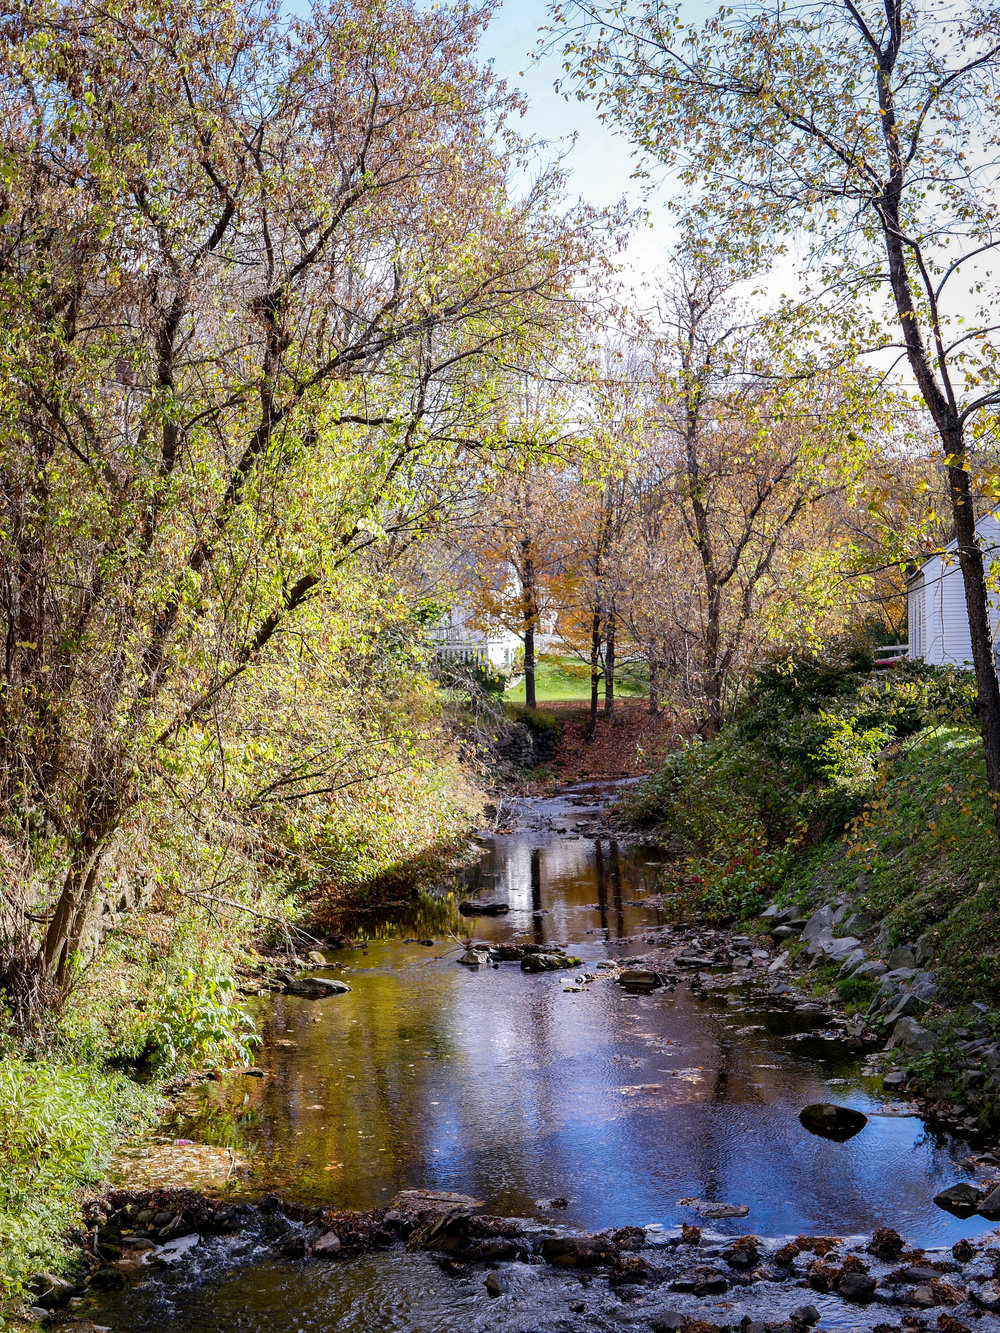 A pretty creek in the quaint Vermont town of Woodstock.